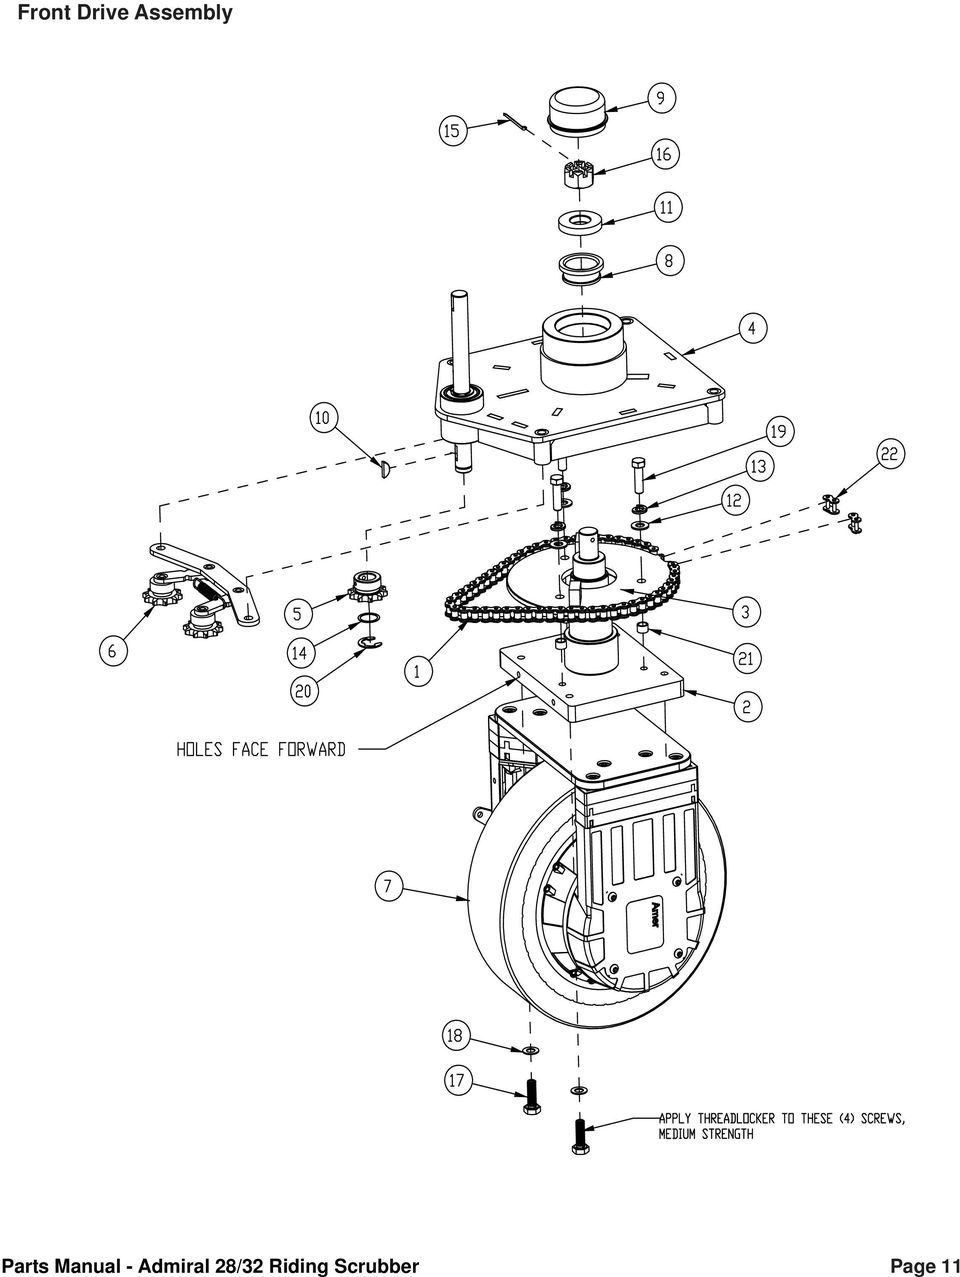 admiral dryer wiring diagram Collection-Admiral Dryer Parts Diagram Luxury Admiral 28 32 Riding Scrubber Pdf 9-a